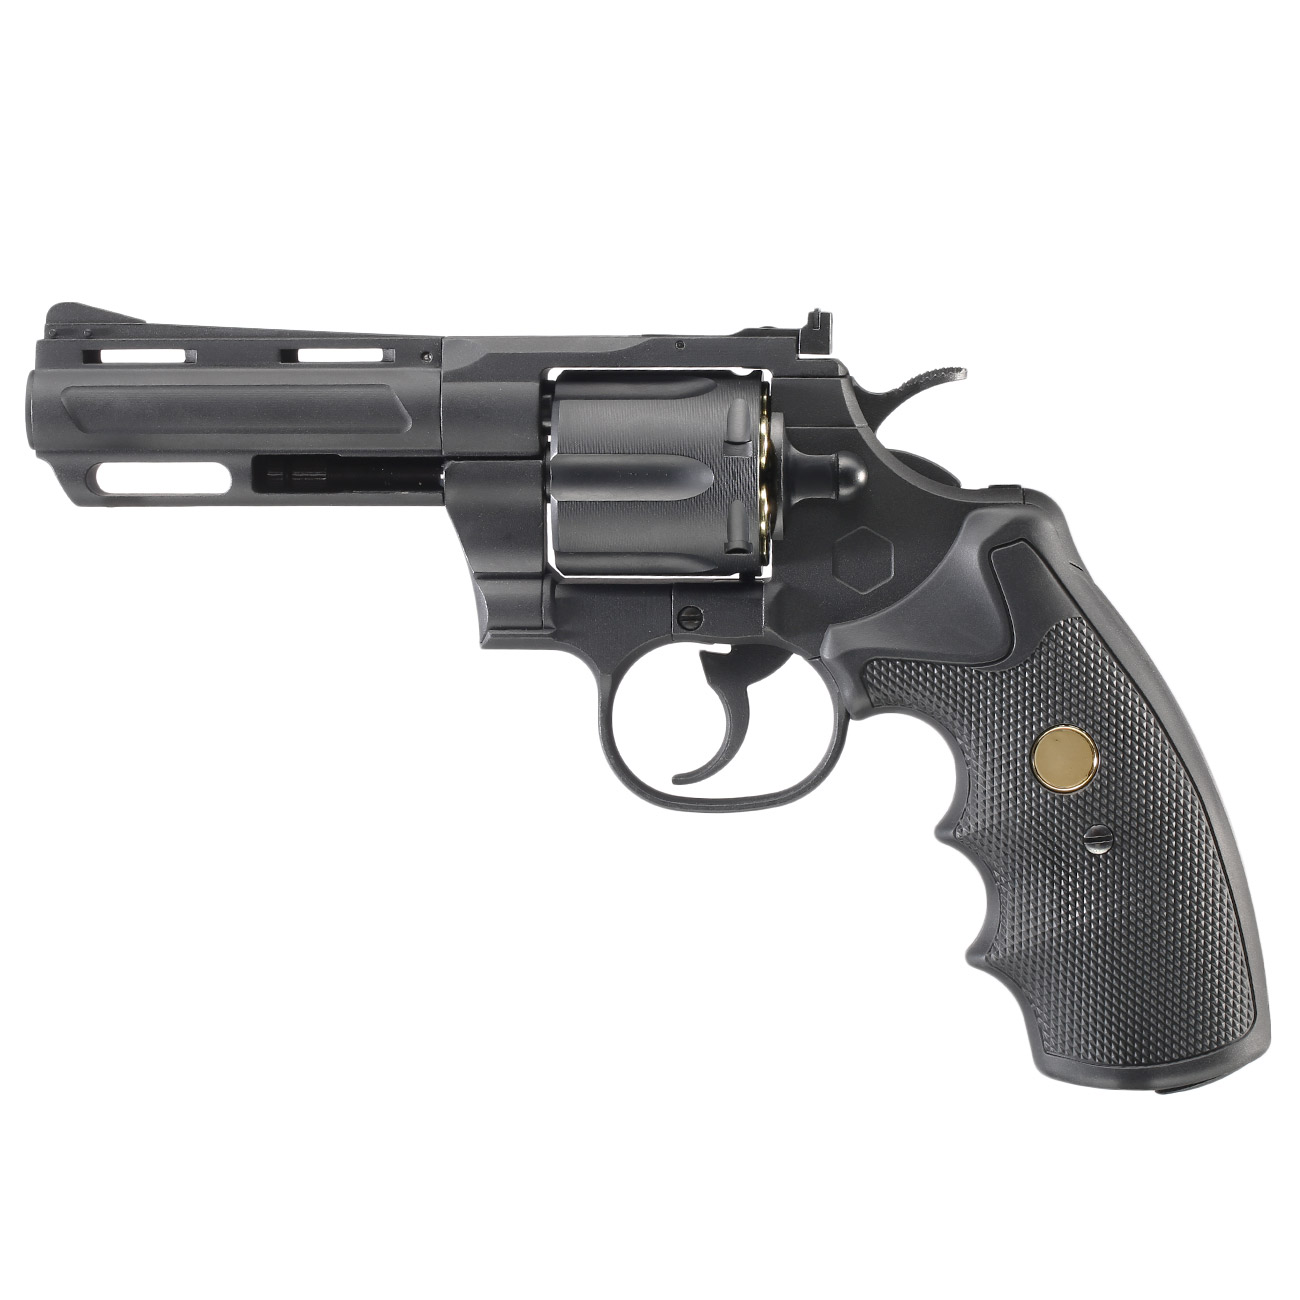 King Arms .357 Magnum Custom I 4 Zoll Revolver Vollmetall CO2 6mm BB schwarz 1